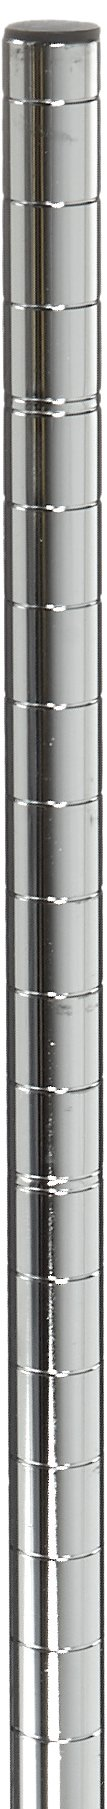 Metro 74P Metro Site Select Chrome Plated Steel Stationary Post, 1'' Diameter x 74-5/8'' Height (Pack of 4)